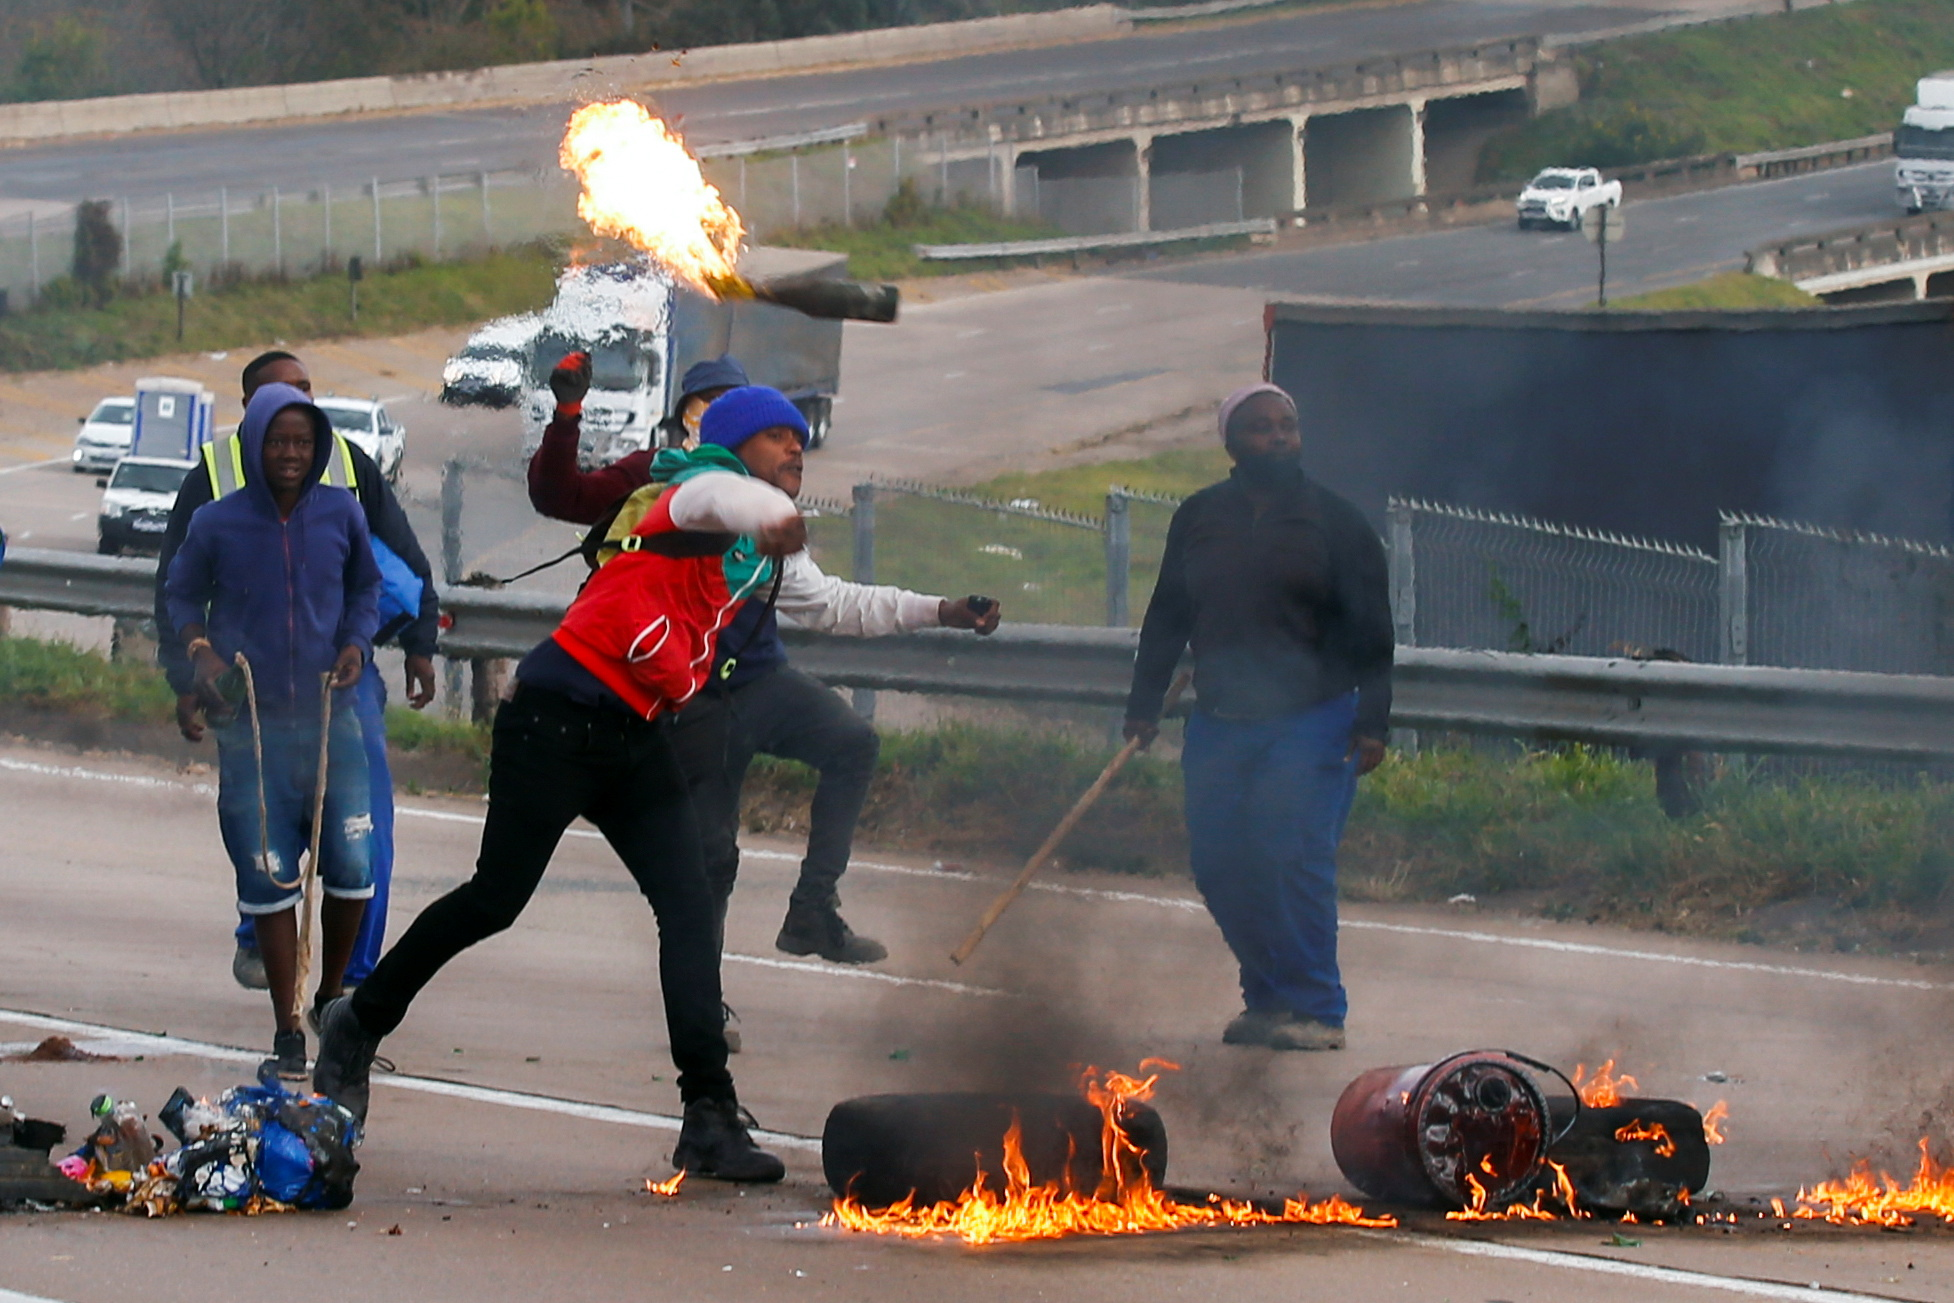 Supporters of former South African President Jacob Zuma block a freeway with burning tyres during a protest in Peacevale, South Africa, July 9, 2021. REUTERS/Rogan Ward